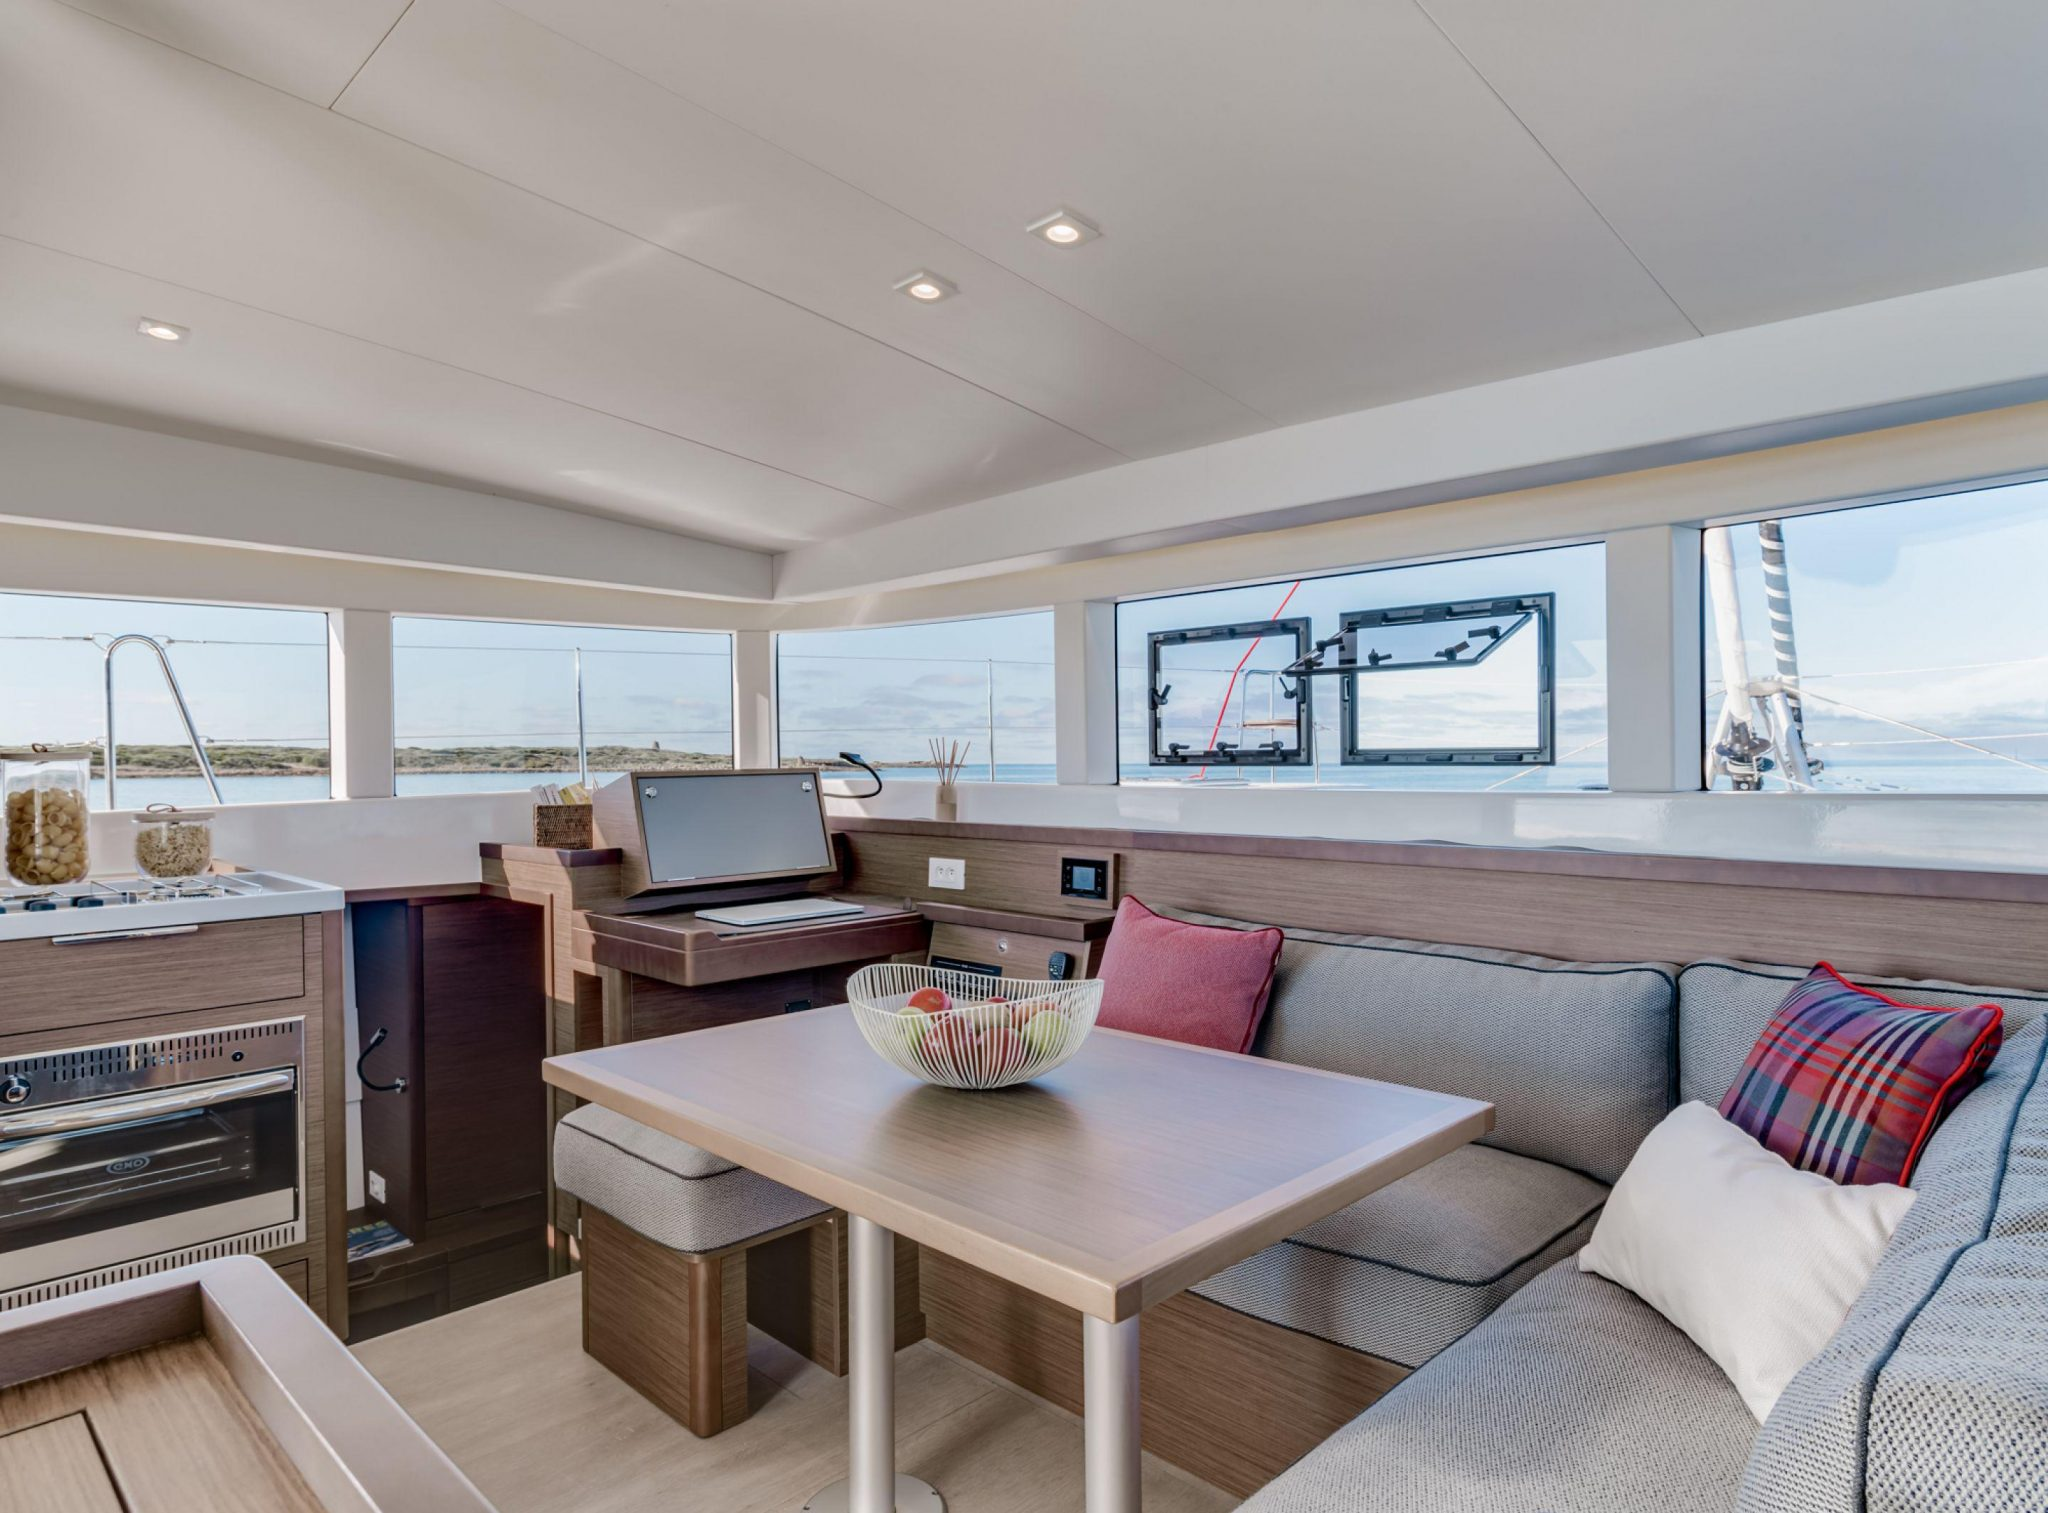 2019 Lagoon 40 Catamaran Interior